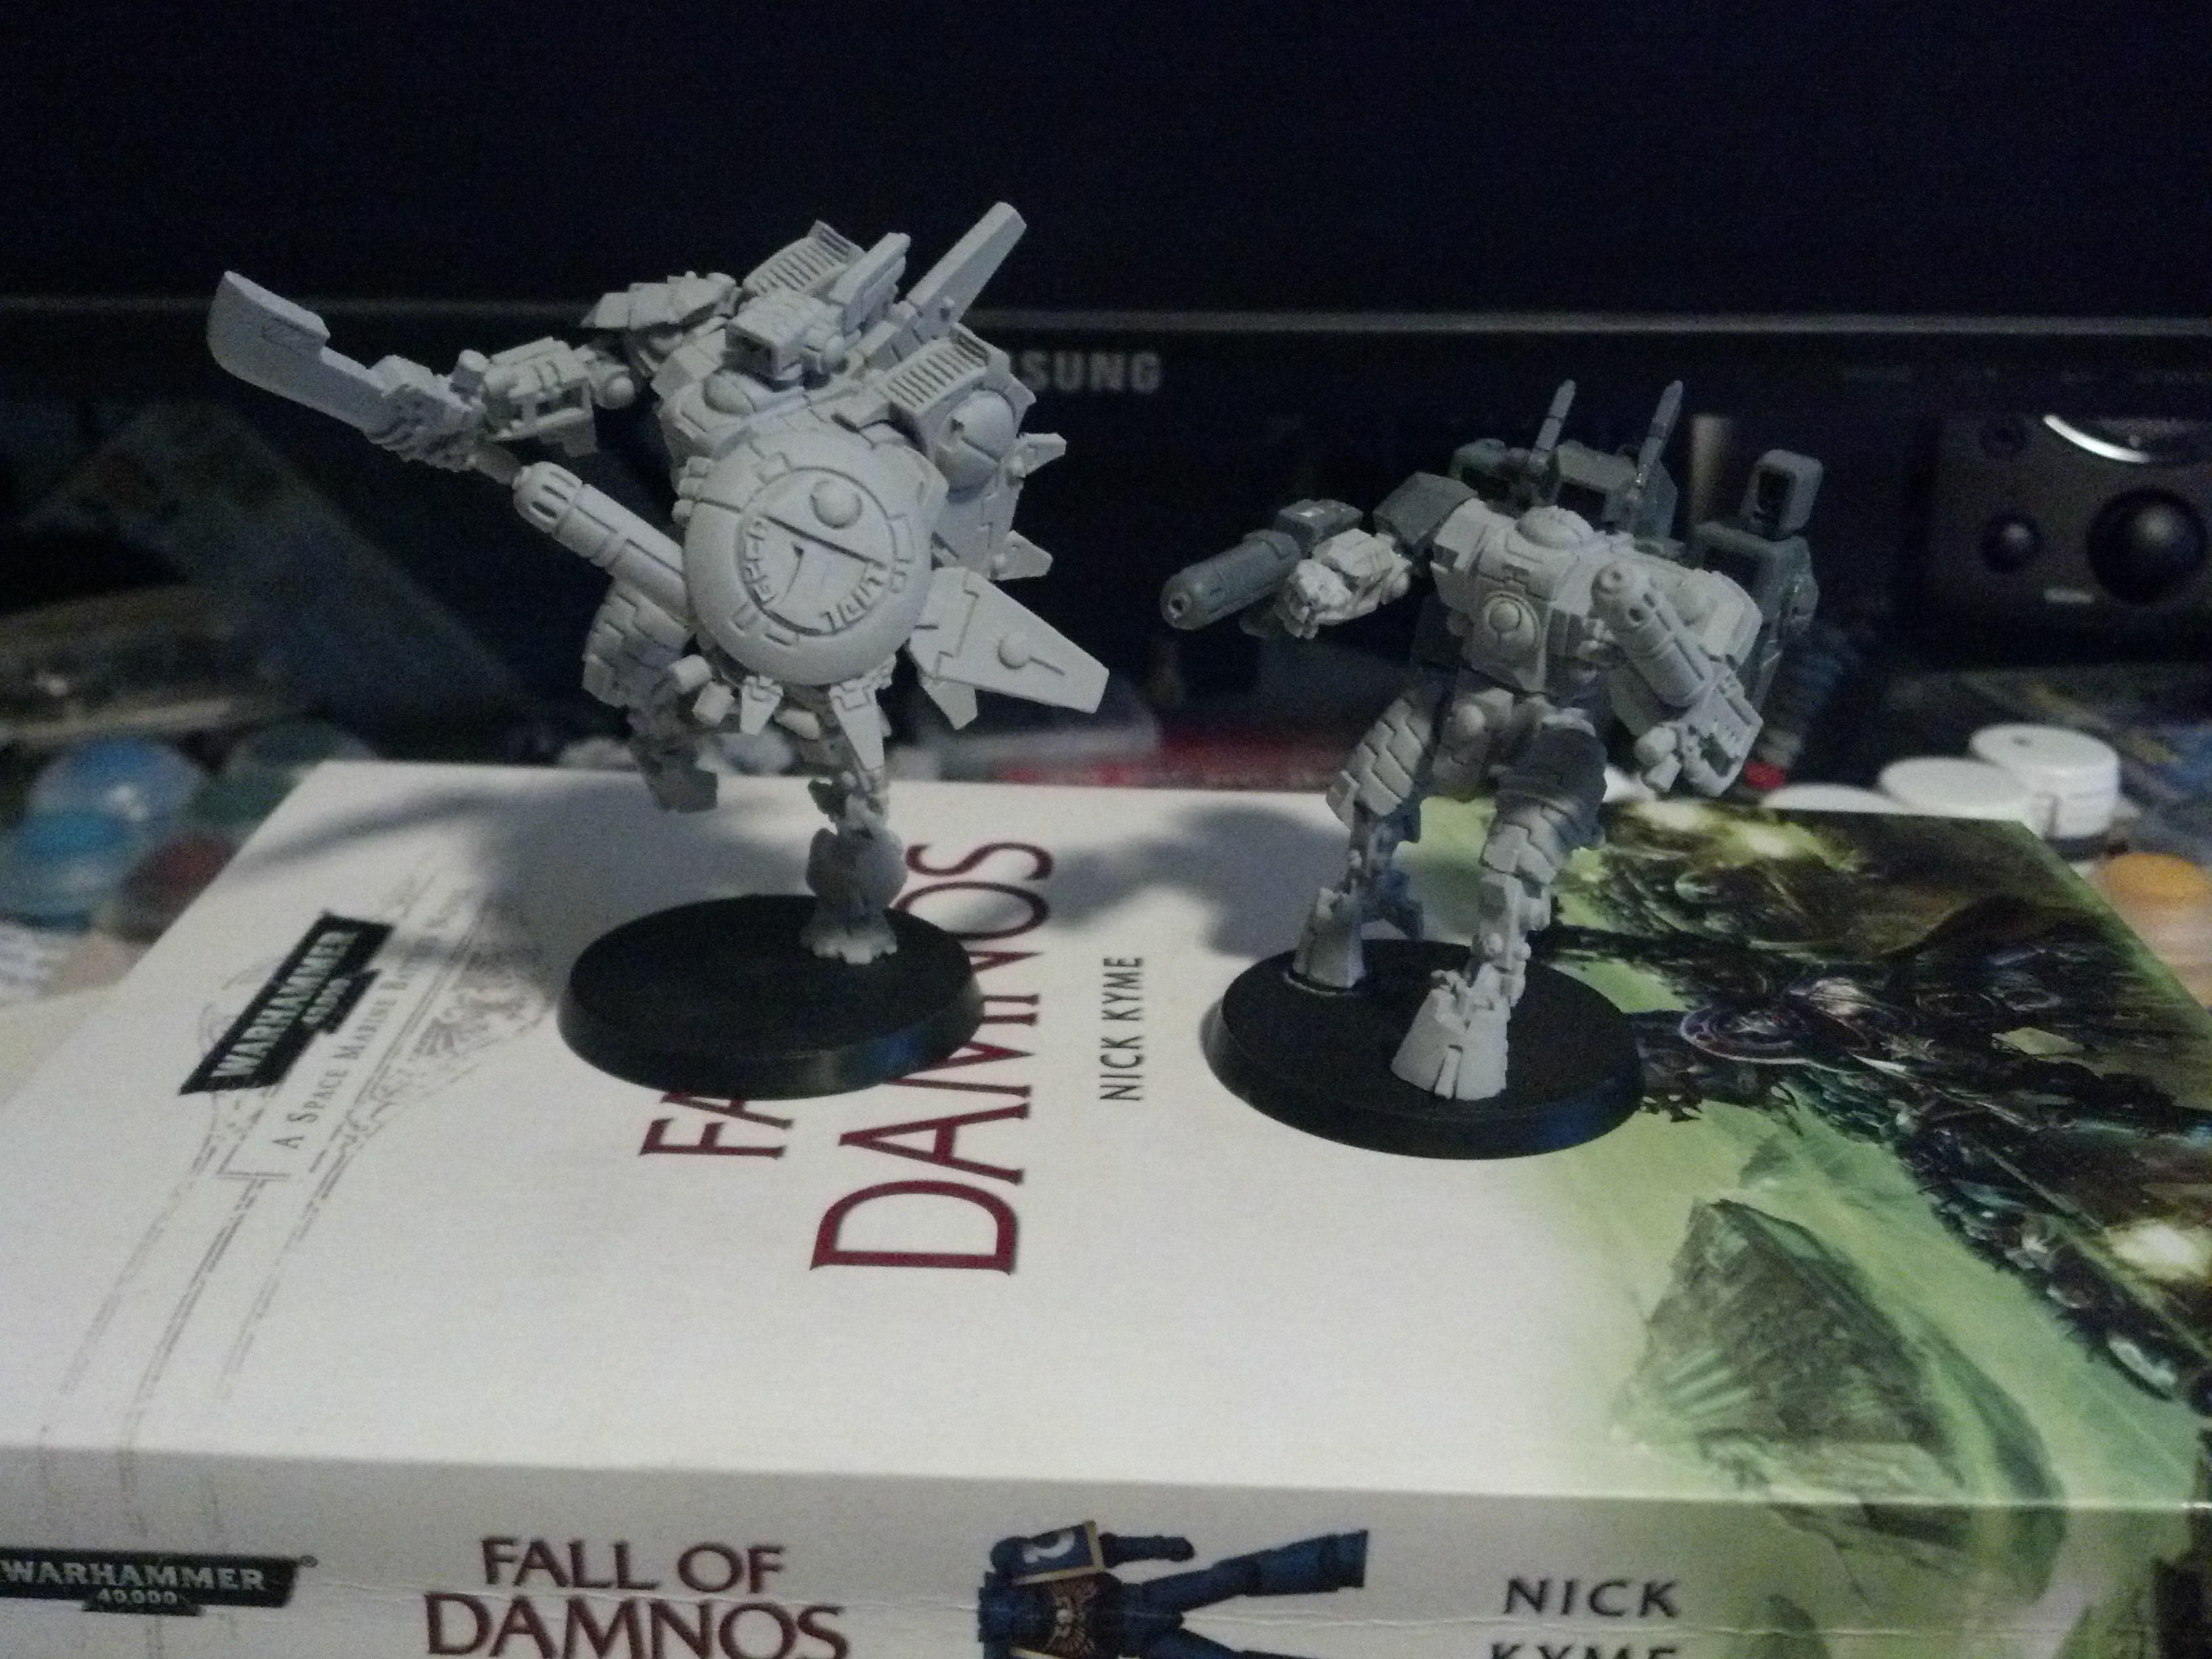 Farsight next to crisis conversion